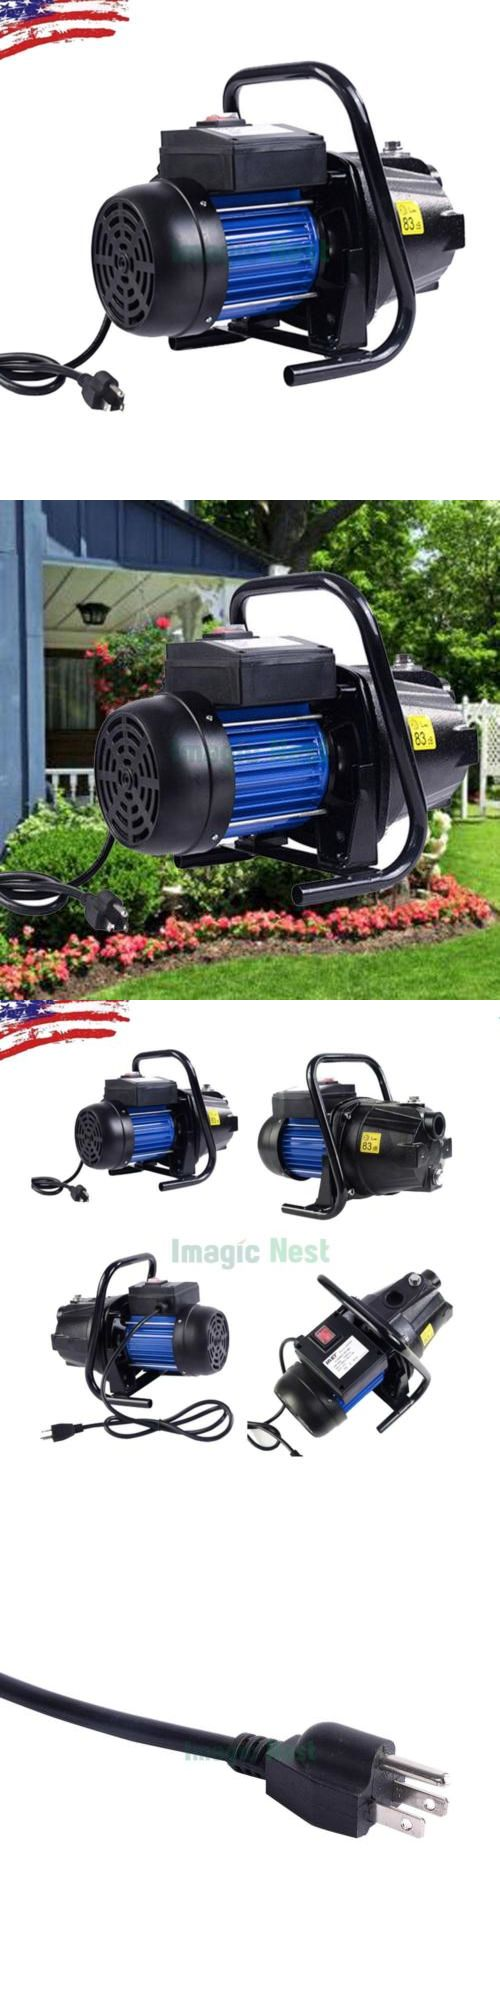 Other Watering Equipment 29522: Water Booster Pump 1200W 1 Shallow Well Home Garden Irrigation 1000Gph Draining -> BUY IT NOW ONLY: $68.88 on eBay!